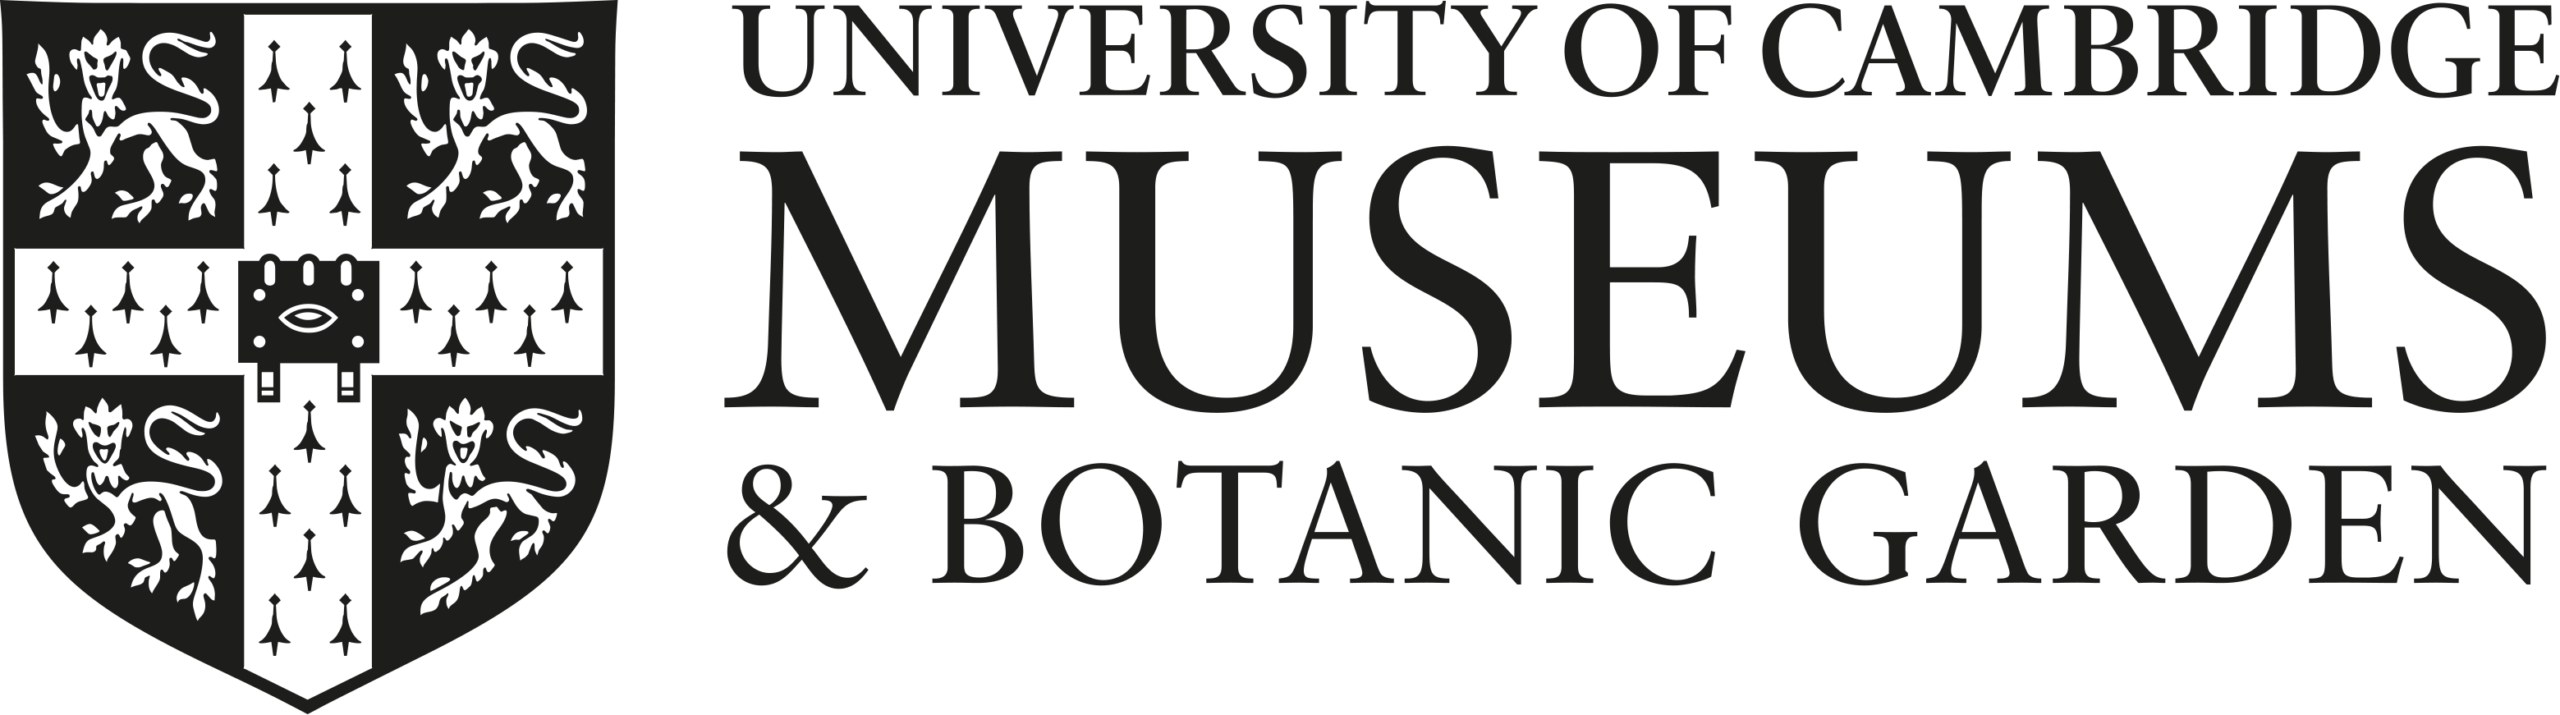 University of Cambridge Museums and Botanic Garden